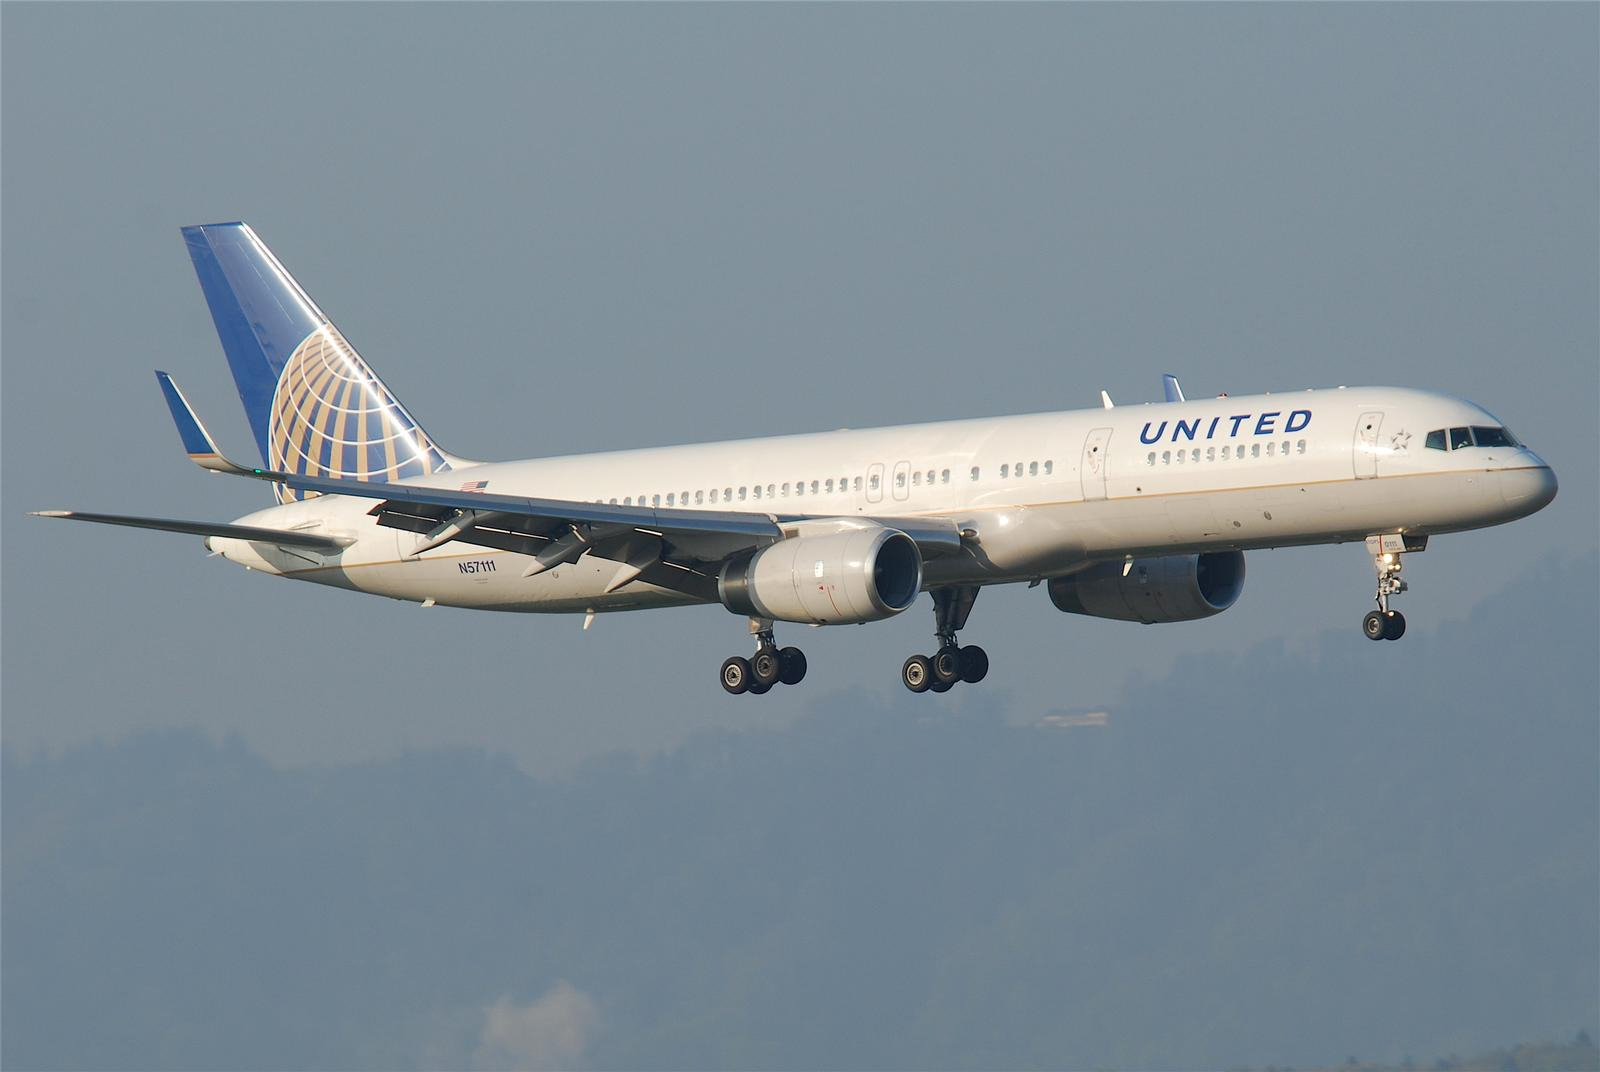 Boeing 757 fra United Airlines.